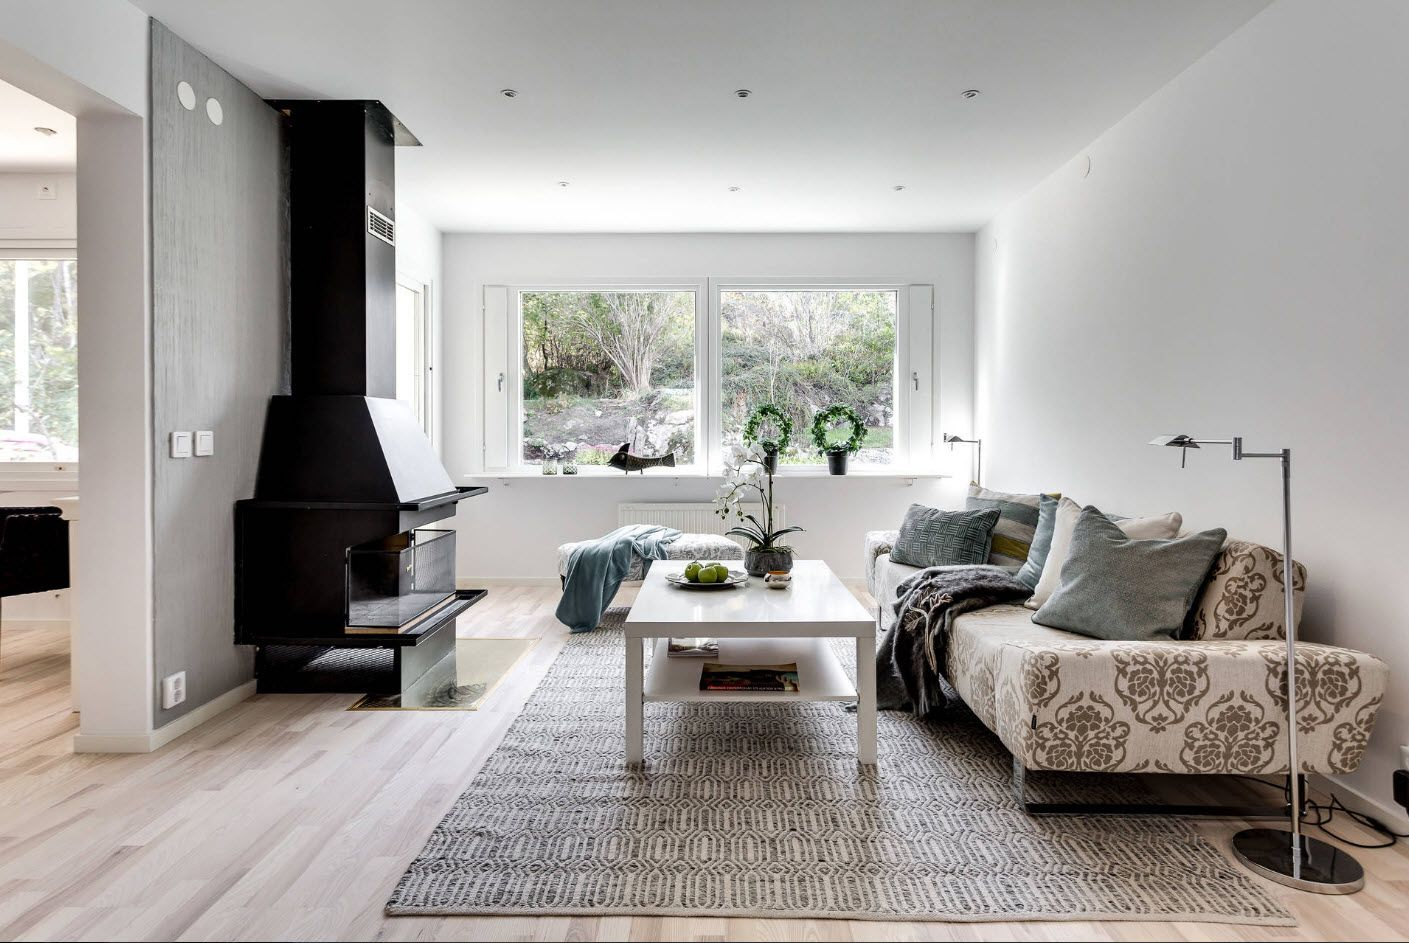 Atmosphere of calmness and dignity in the white living room with black real fireplace with chimney